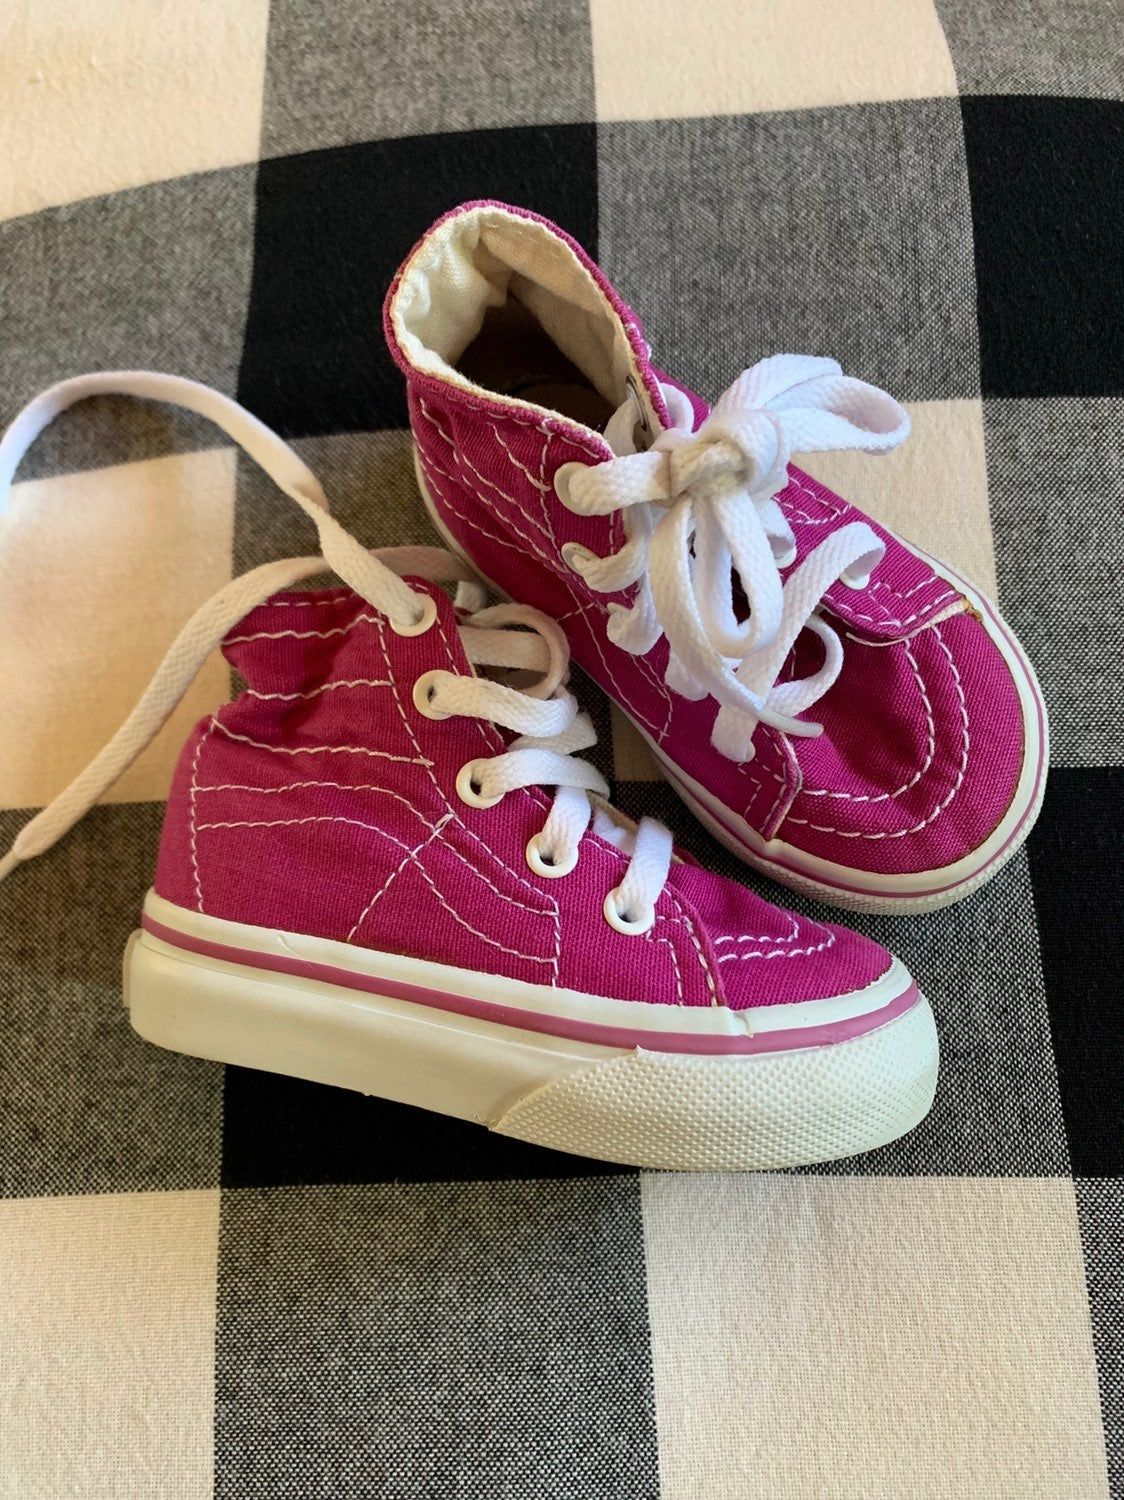 Vans Toddler Size 4, fuchsia color Very